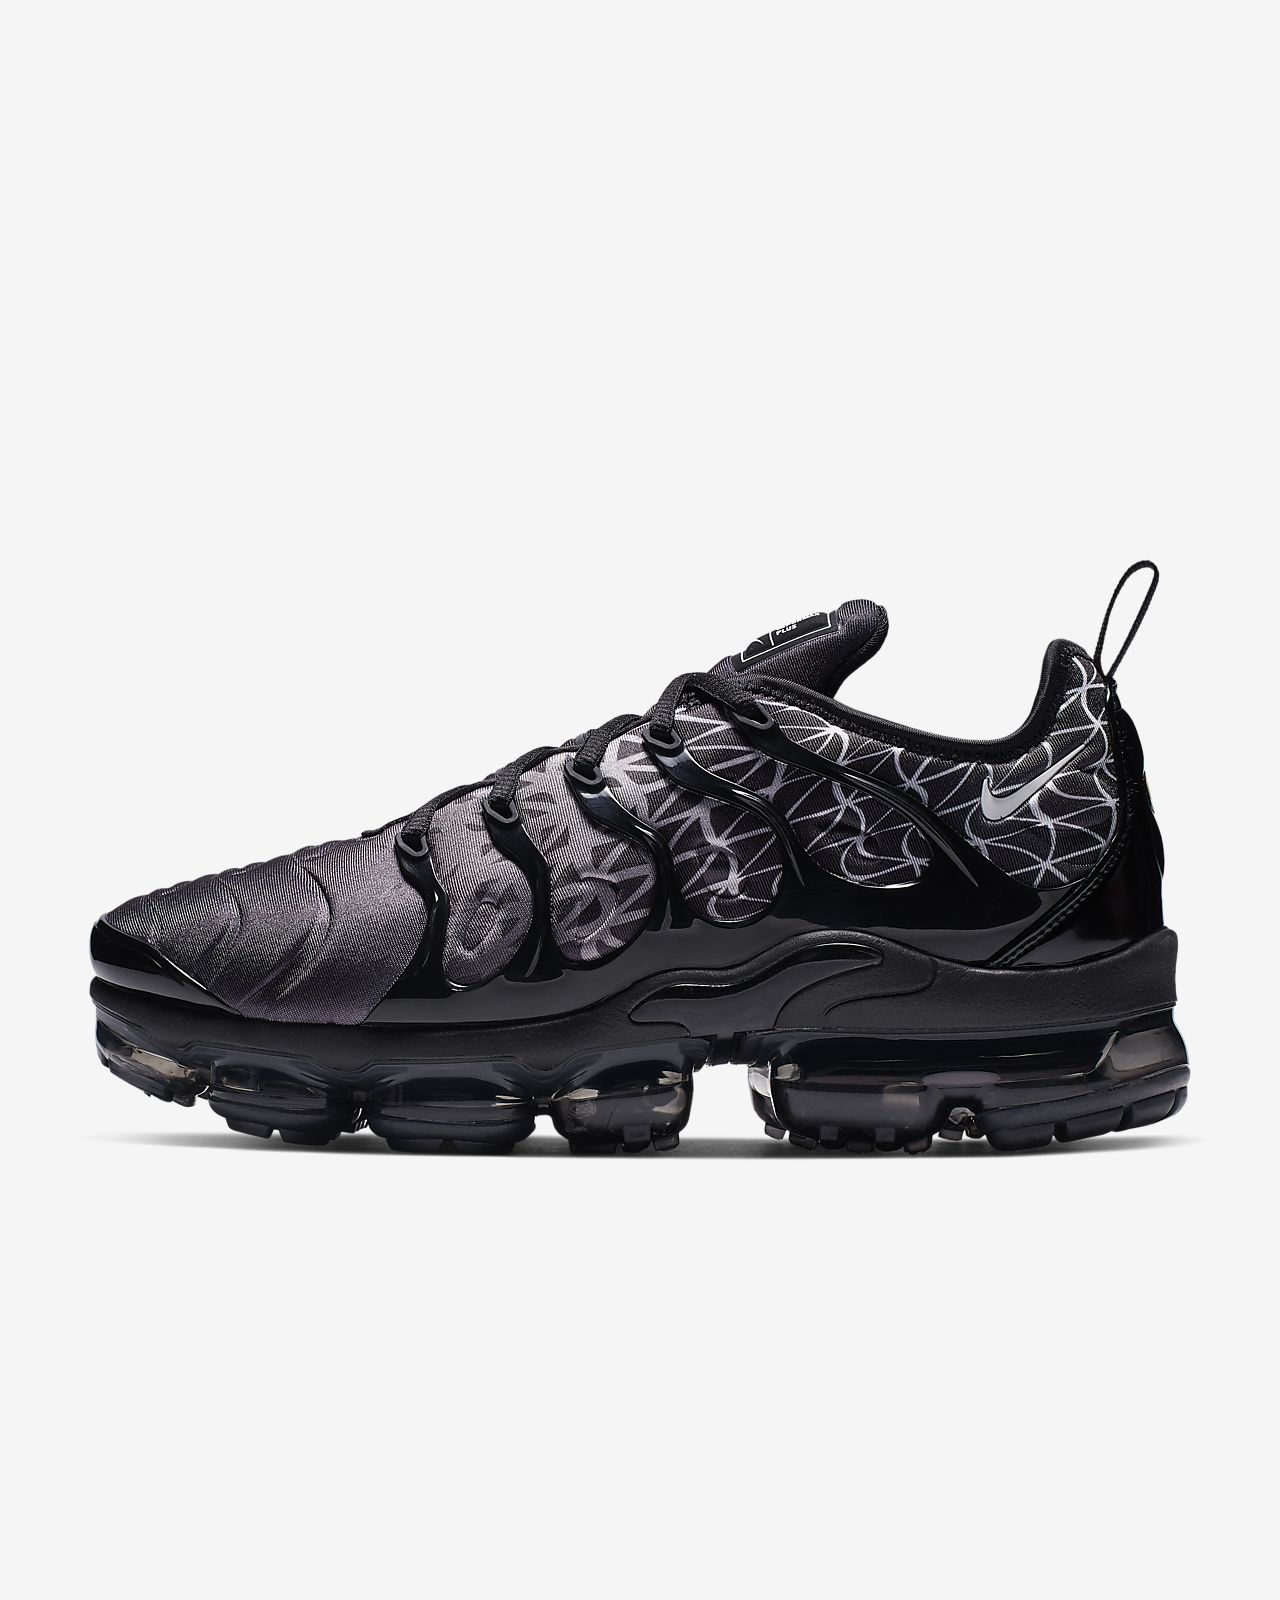 sneakers for cheap 0d9f7 96d30 ... Chaussure Nike Air VaporMax Plus pour Homme